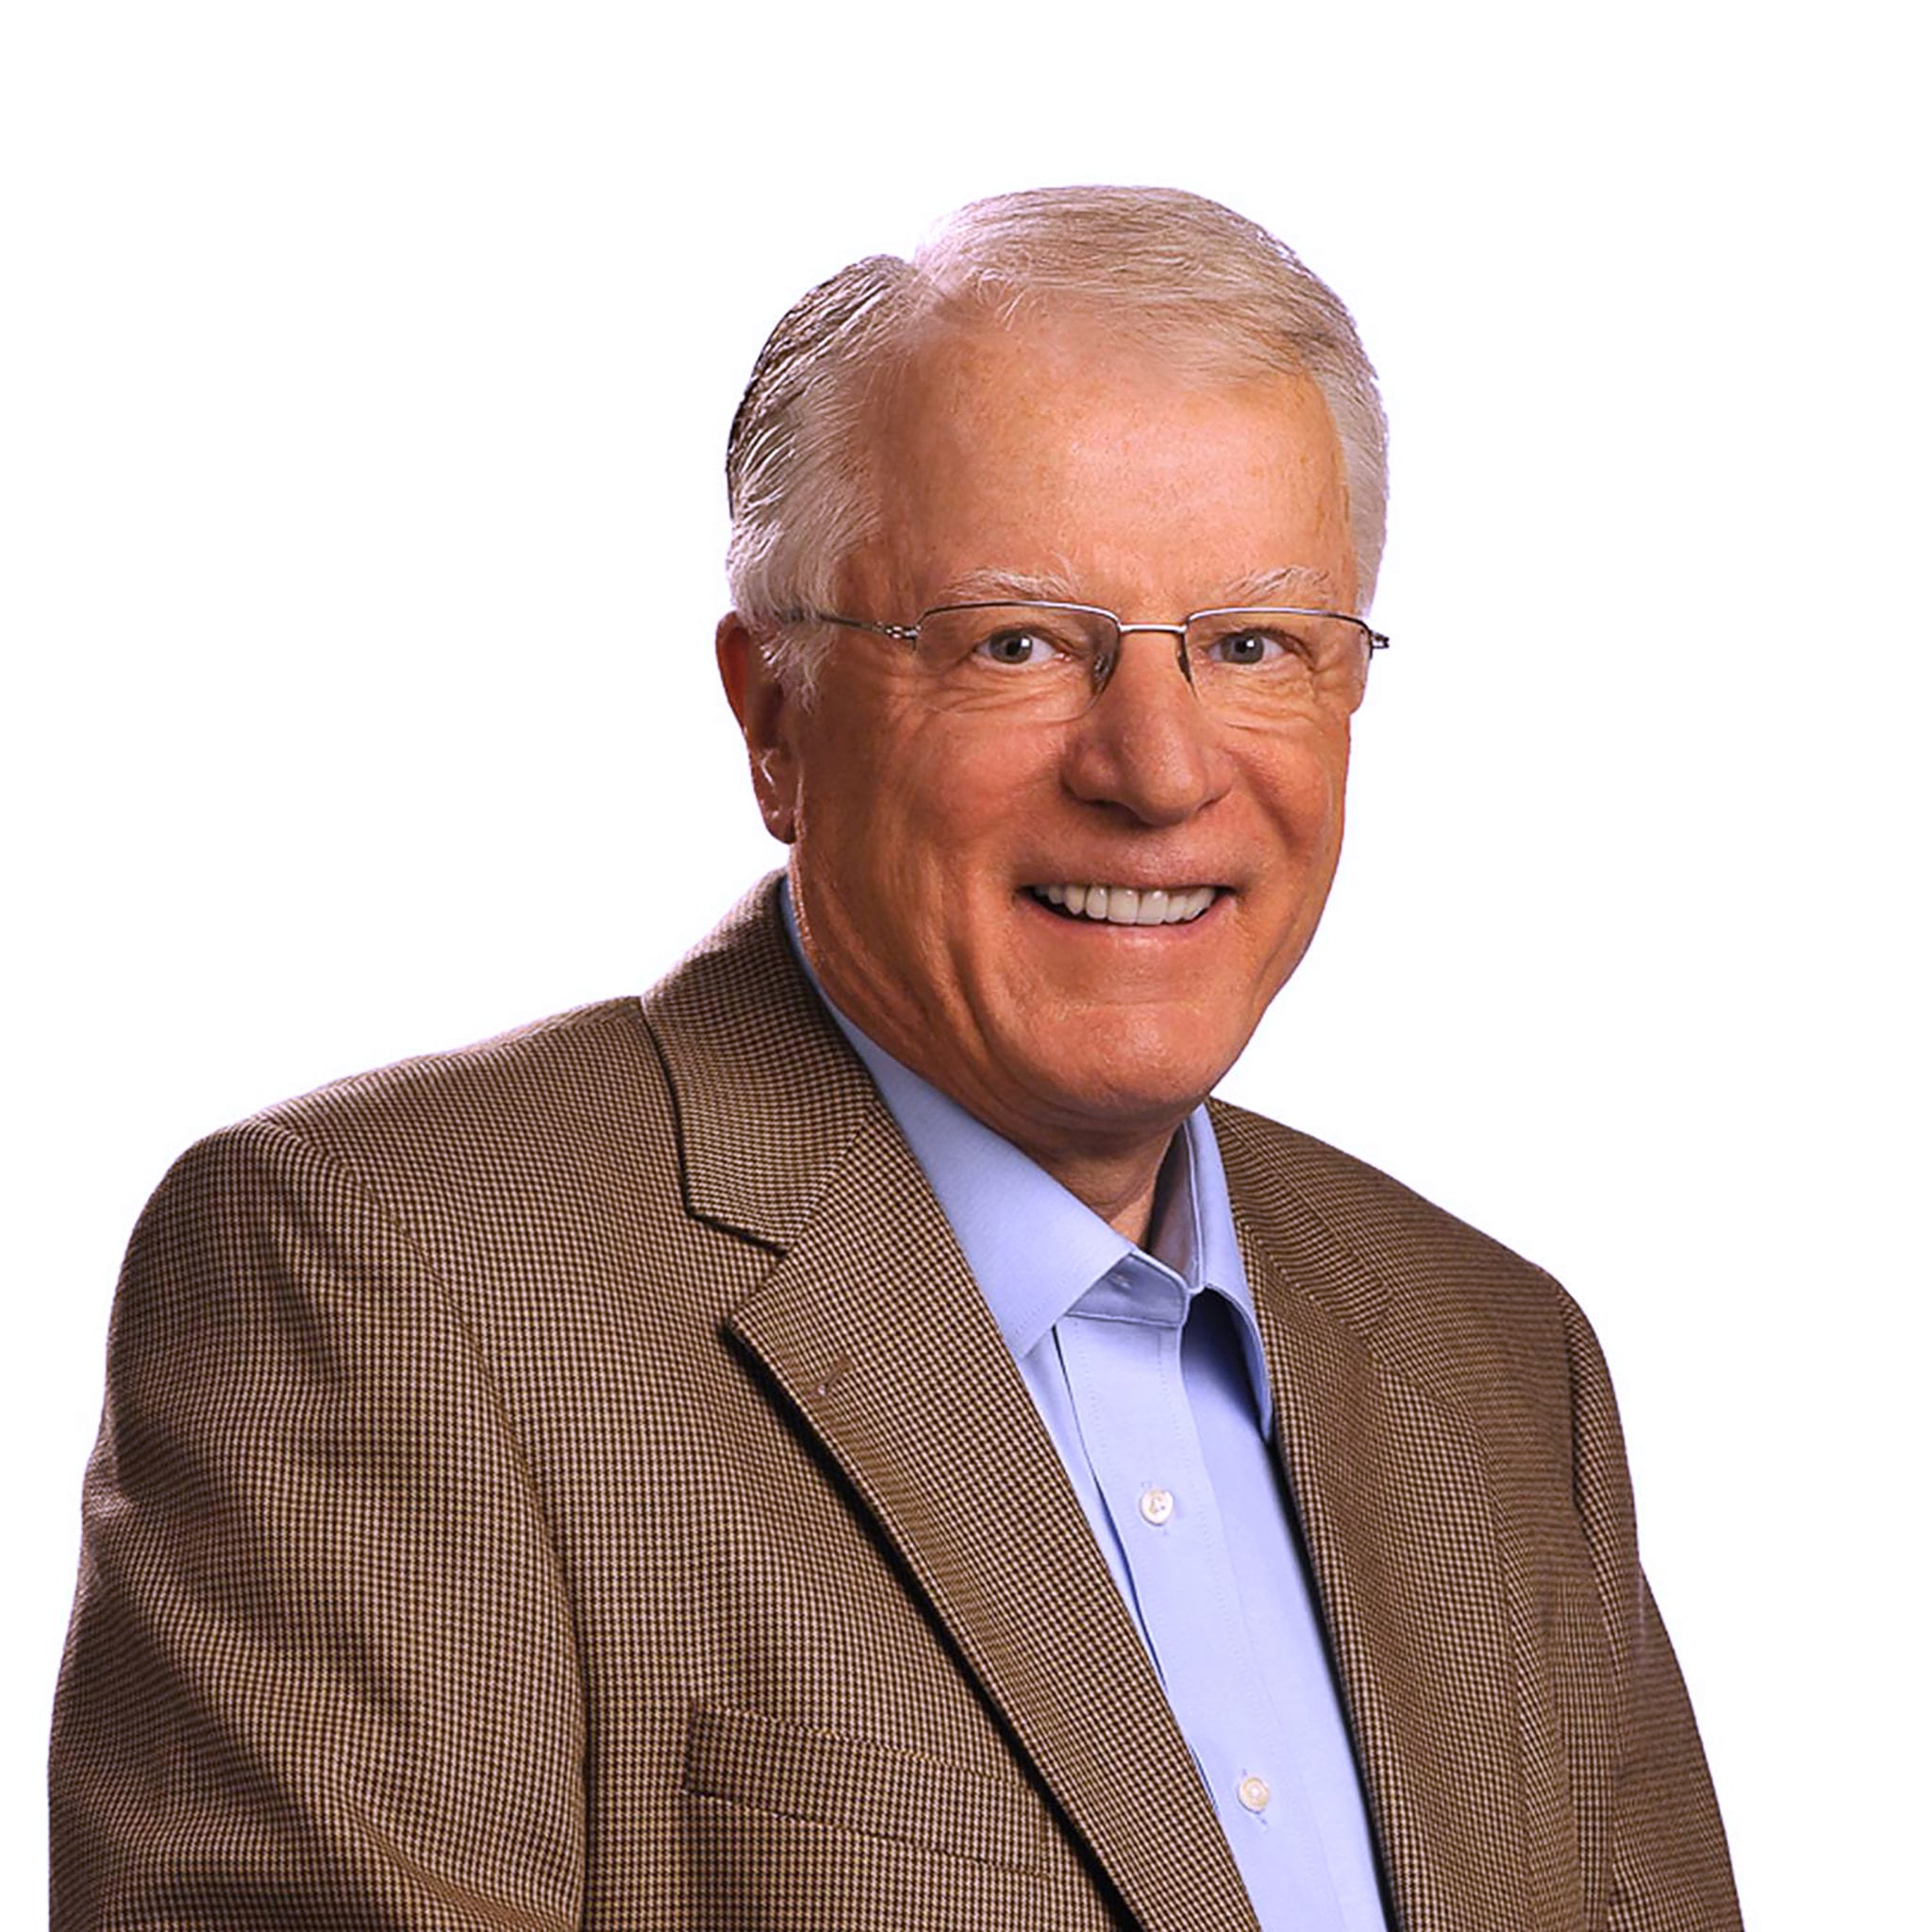 ERWIN LUTZER: RUNNING TO WIN